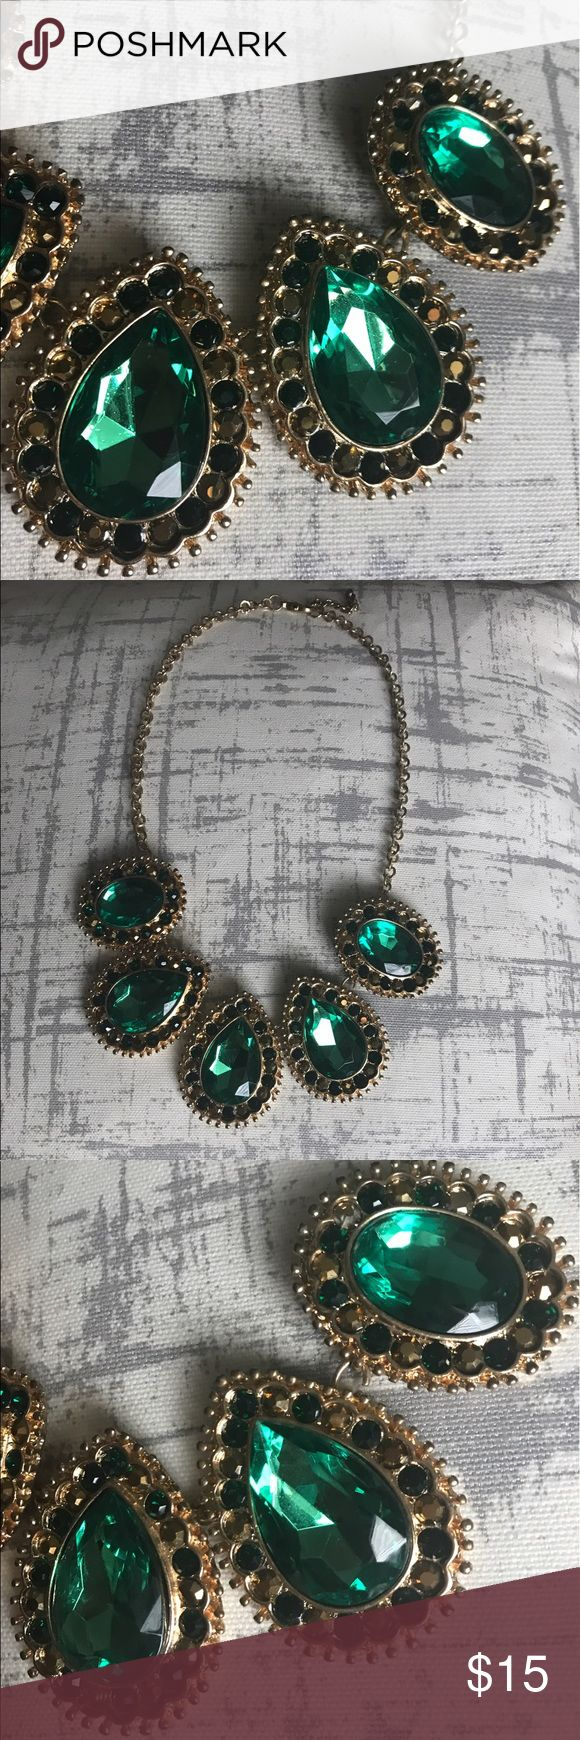 Emerald with gold necklace All gems and rhinestones intact. Used twice only. Jewelry Necklaces